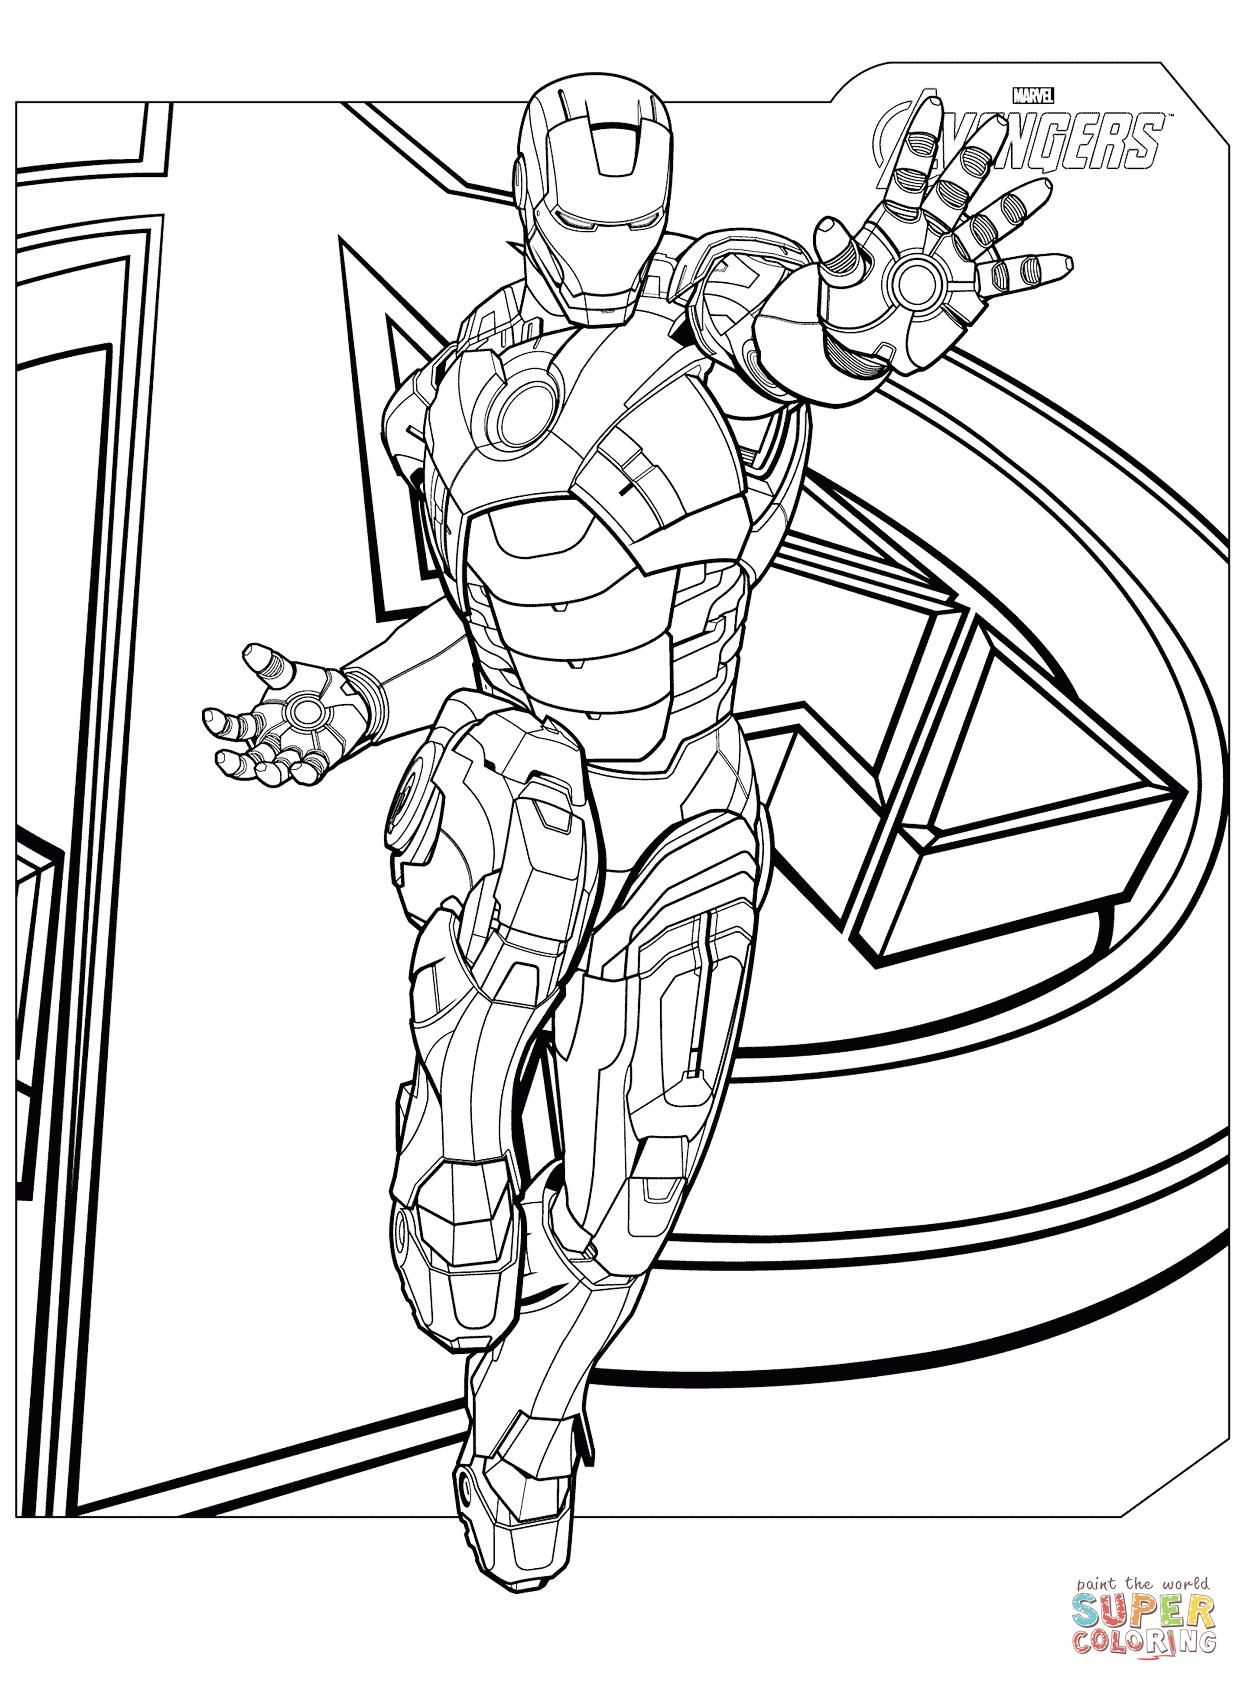 Coloring Page Avengers Superhero Coloring Marvel Coloring Avengers Coloring